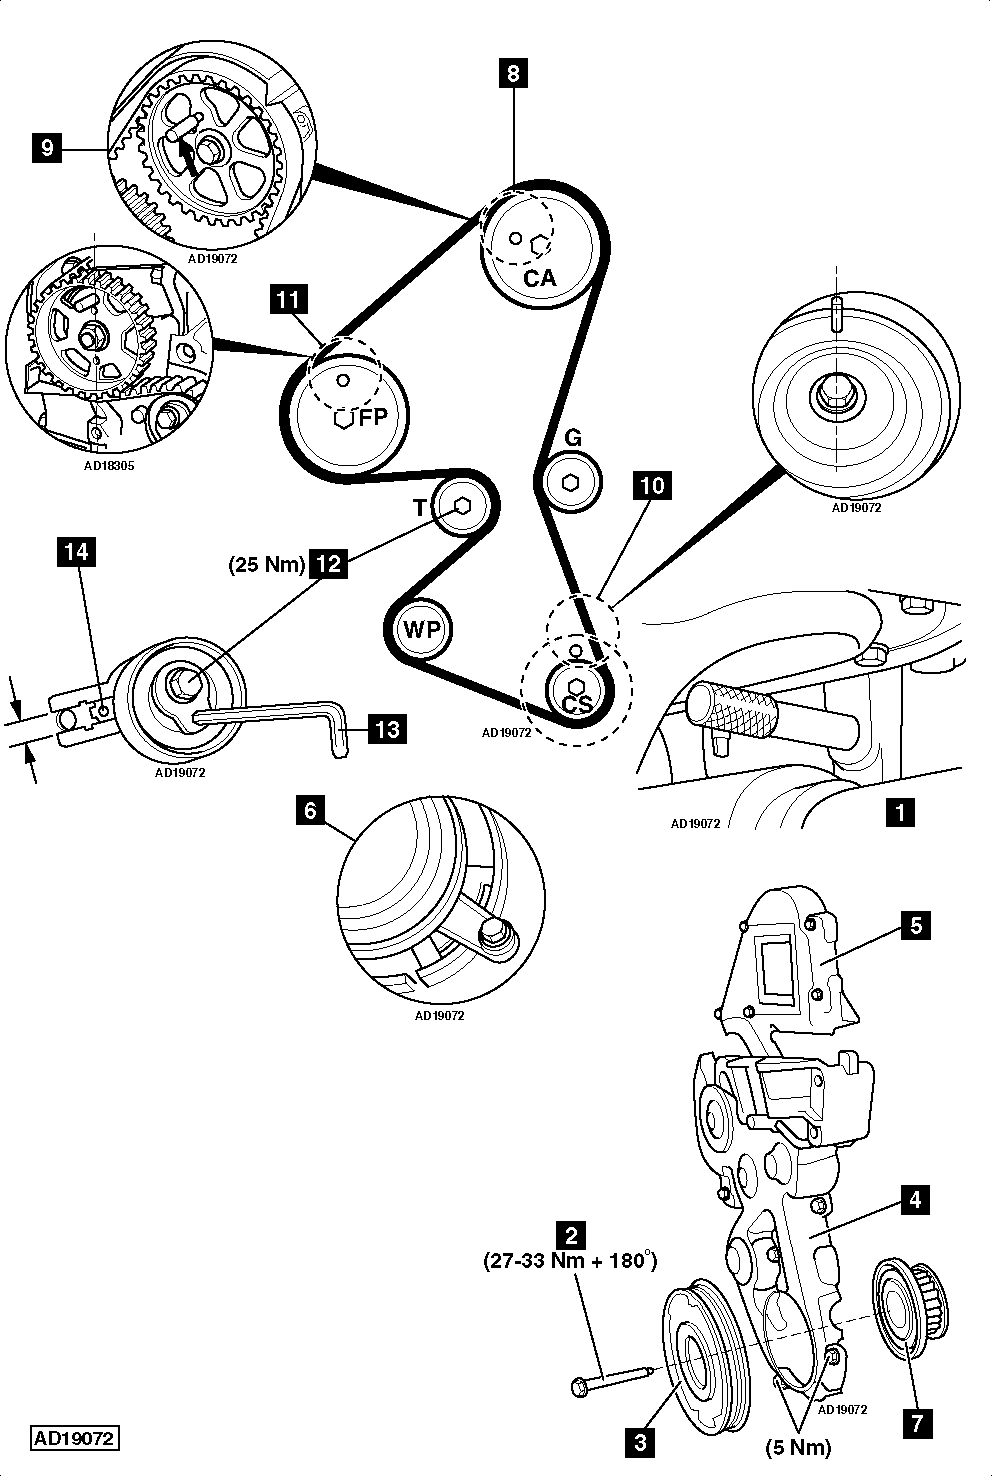 Chevy 2 4l Engine Diagram together with 6 3900 Belt together with 2005 Pontiac Grand Prix 3800 Engine Diagram besides Chevy Colorado 3 5l Engine Diagram further Fuse Box Diagram For 2007 Pontiac Grand Prix. on 2006 pontiac g6 serpentine belt diagram